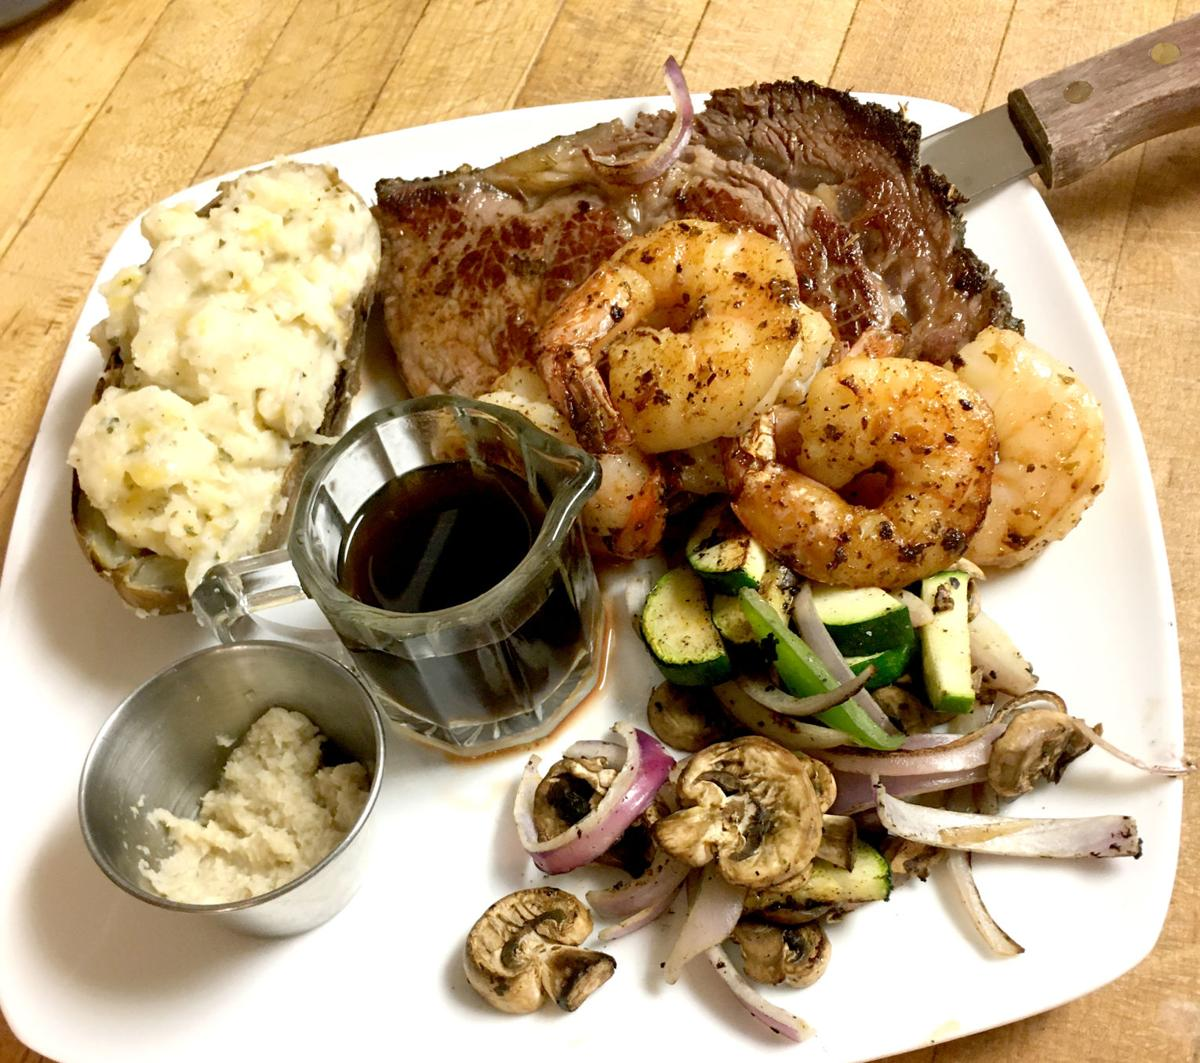 Lord Brixxton's surf and turf